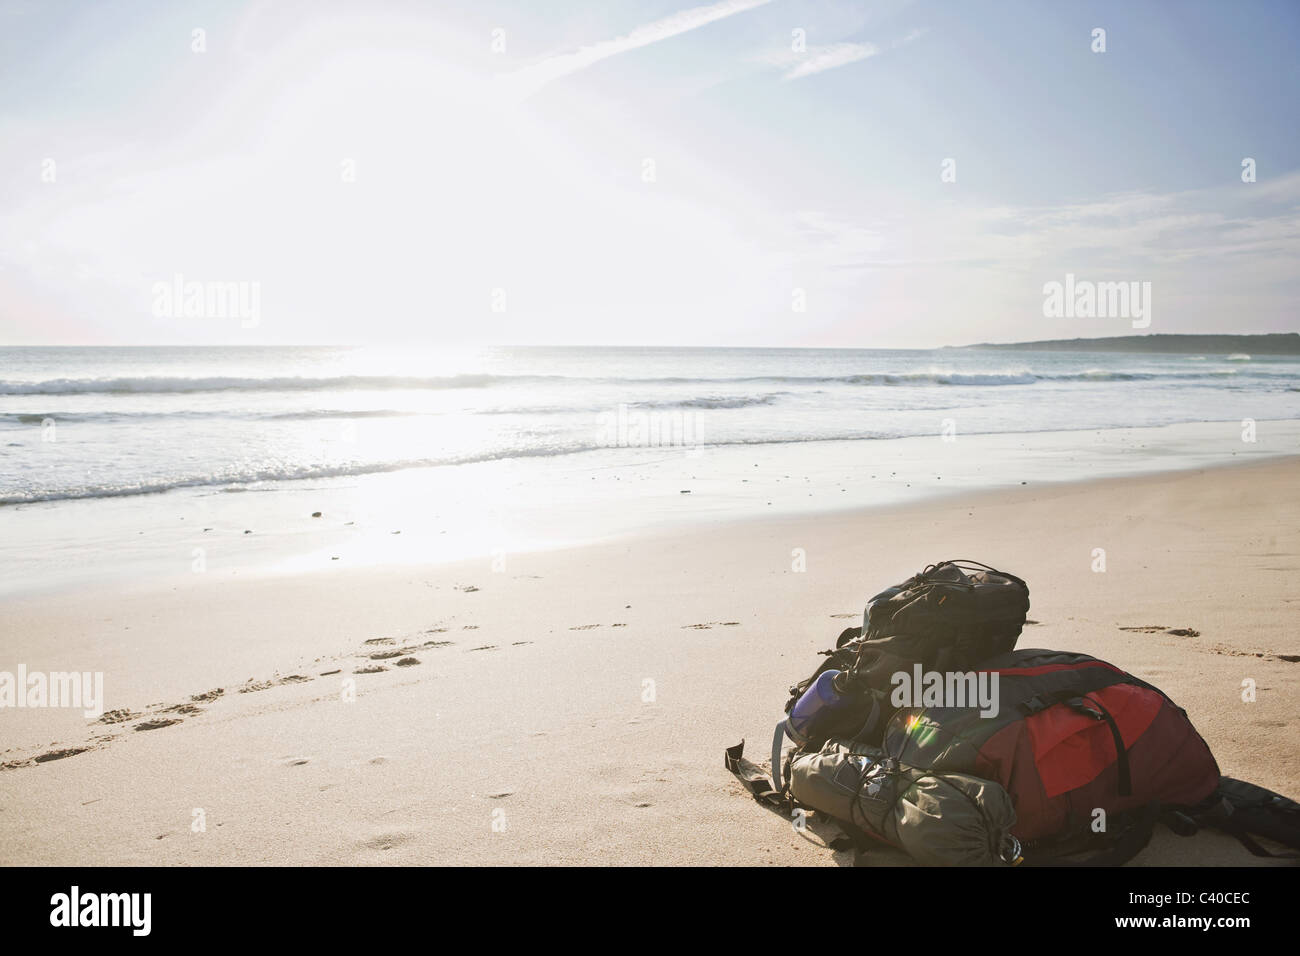 Two backpacks laid down on the beach - Stock Image